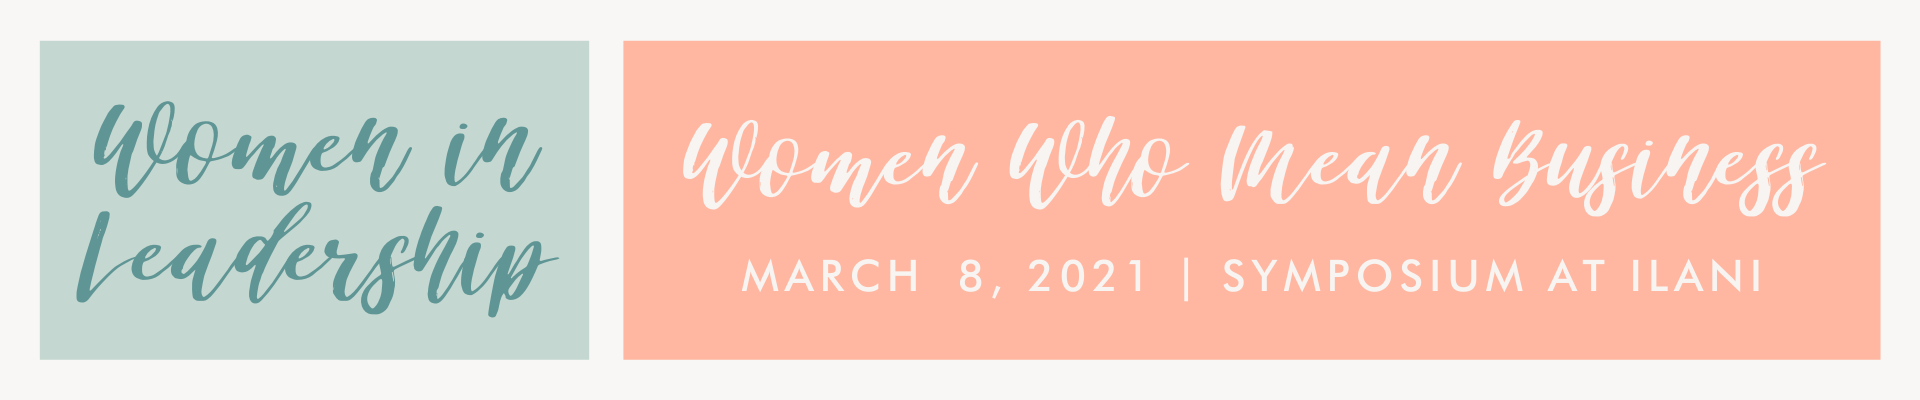 women who mean business march 8 symposium at ilani in leadership